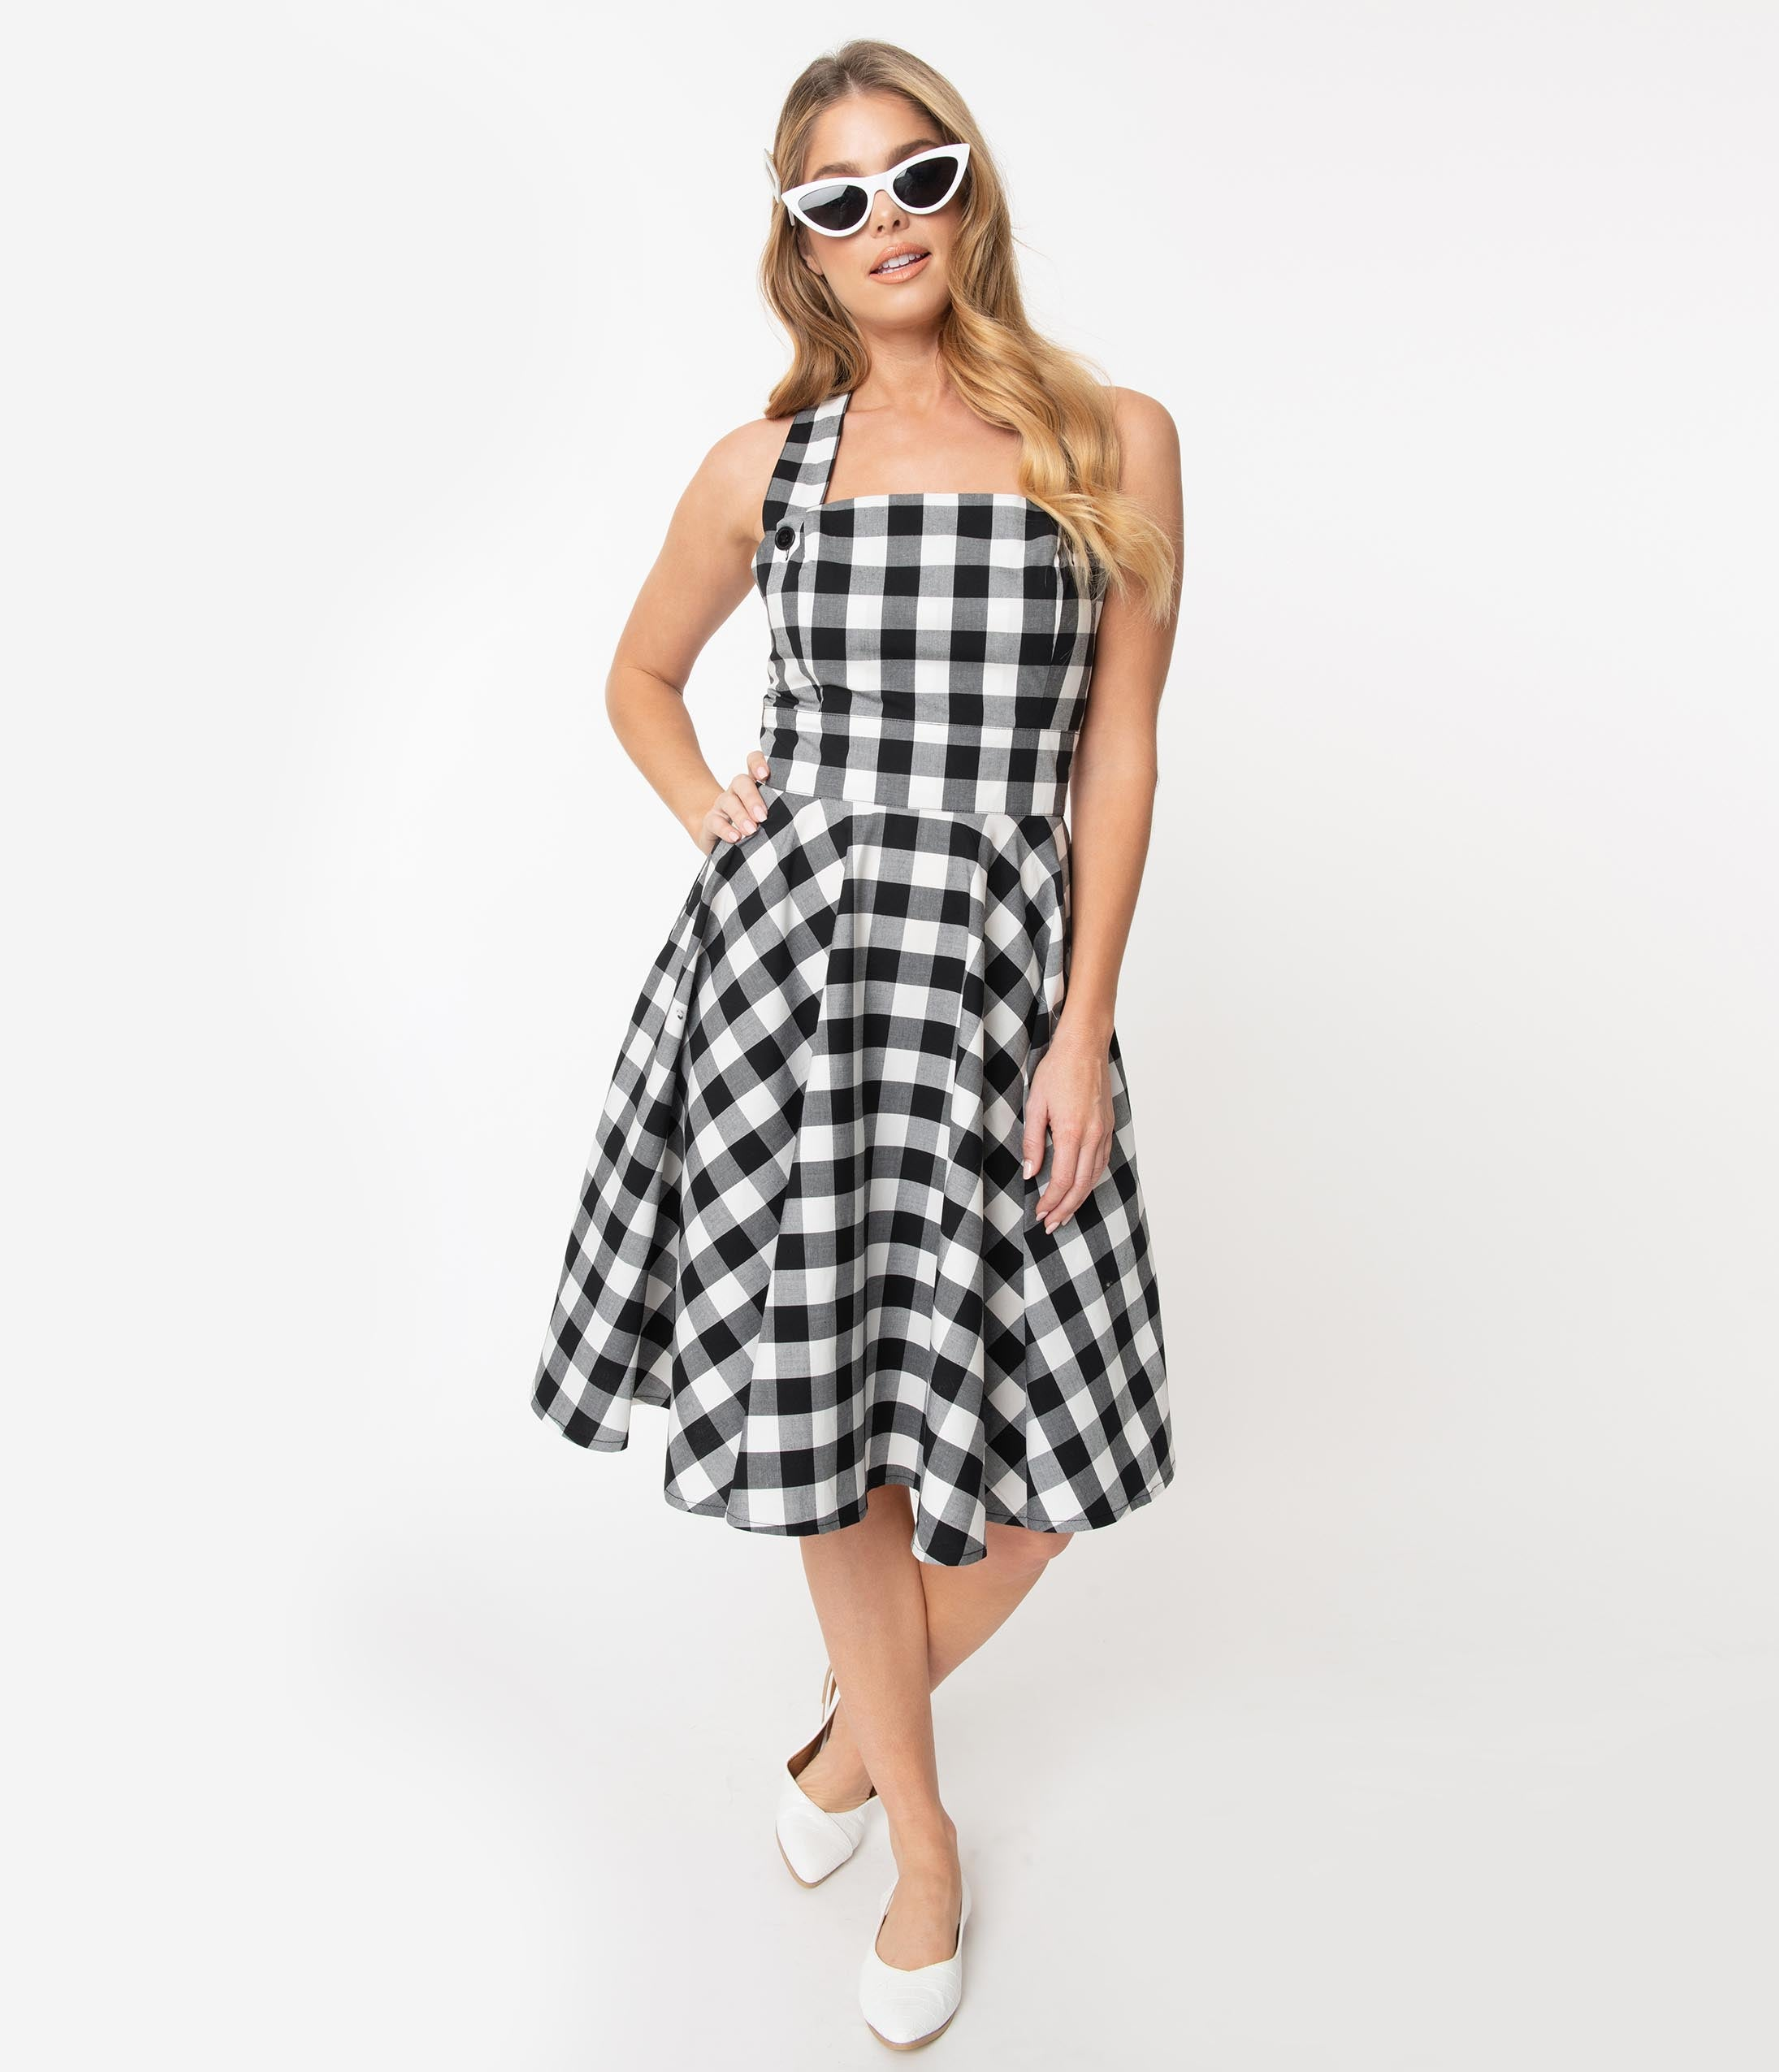 1950s Dresses, 50s Dresses | 1950s Style Dresses Hell Bunny Black  White Gingham Victorine Pinafore Dress $78.00 AT vintagedancer.com